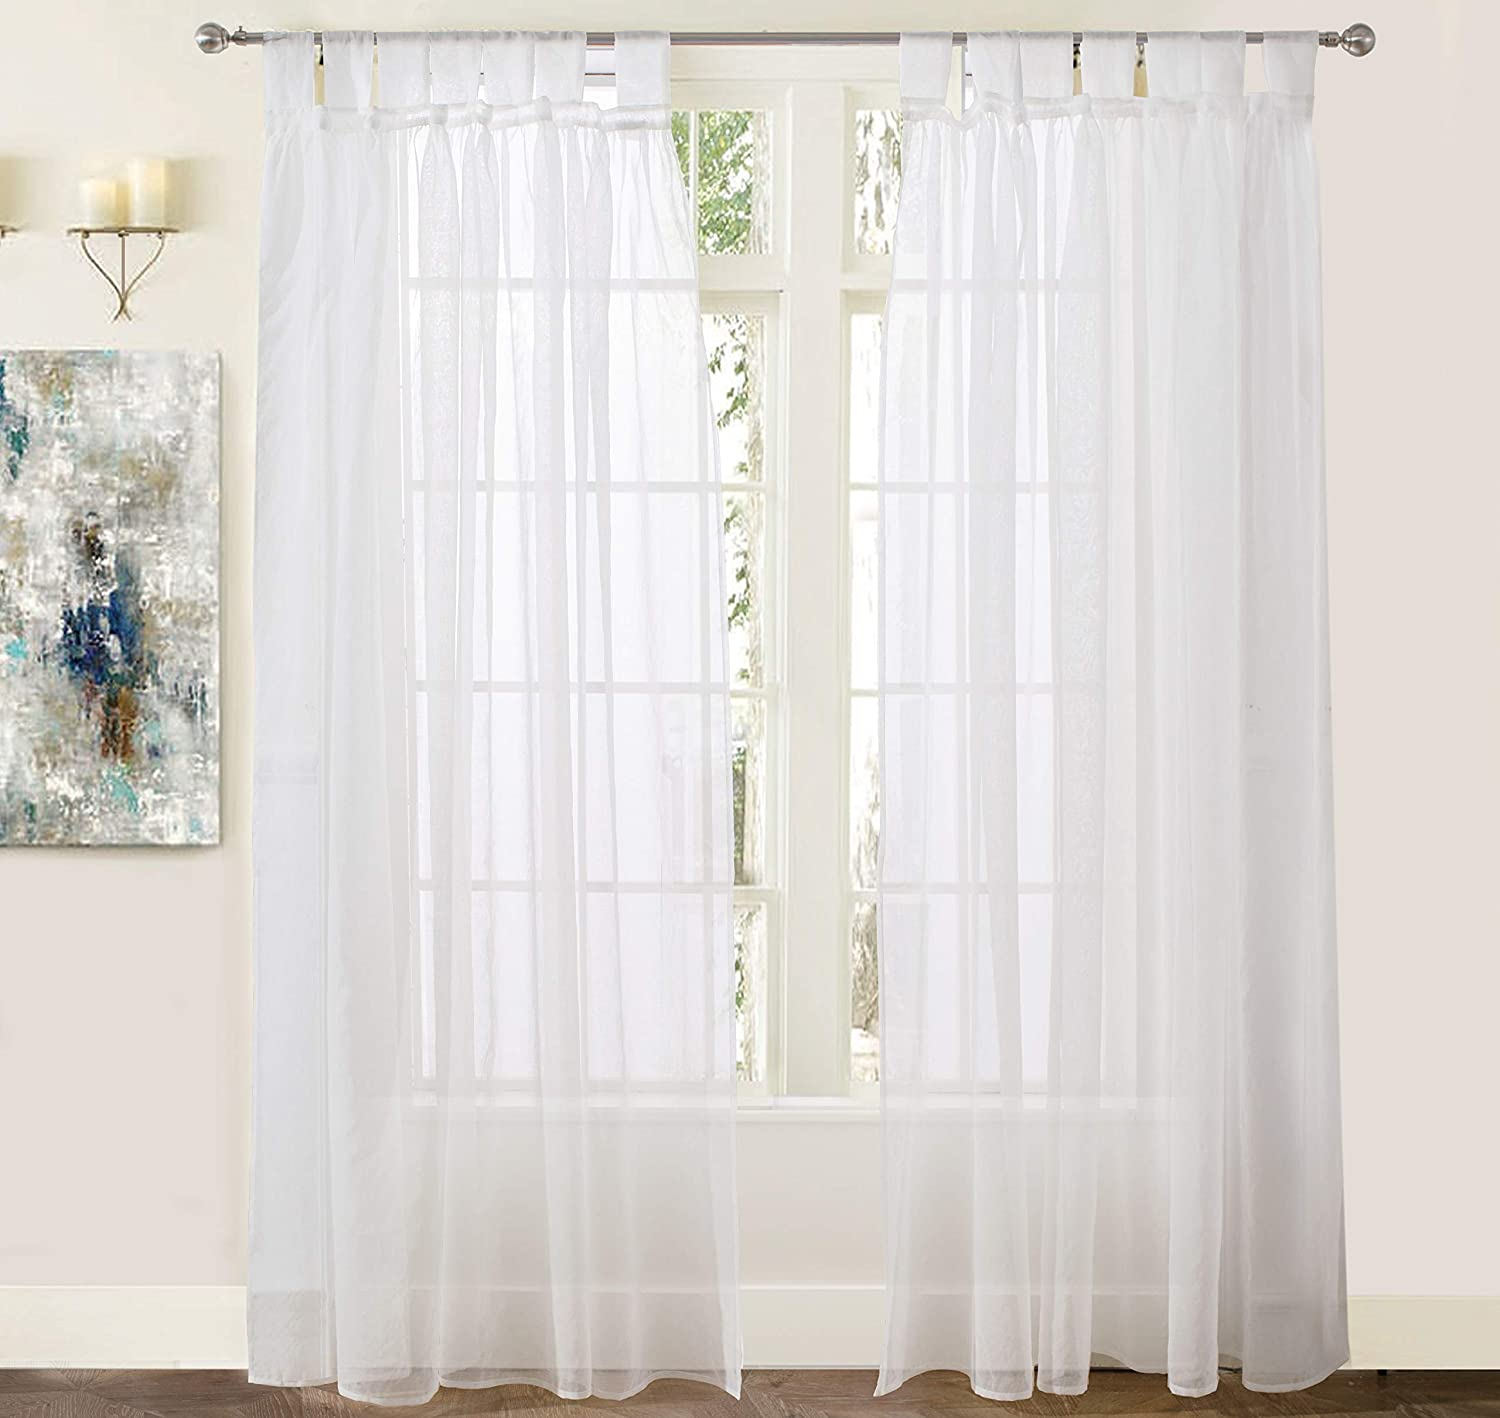 """DriftAway Vintage Ruffle White Solid Sheer Curtain, Faux Linen Texture, Tab Top Window Voile Panel for Bedroom, Living Room, Kids Room, Set of Two Panels, Each 50""""x84"""" (Off White)"""